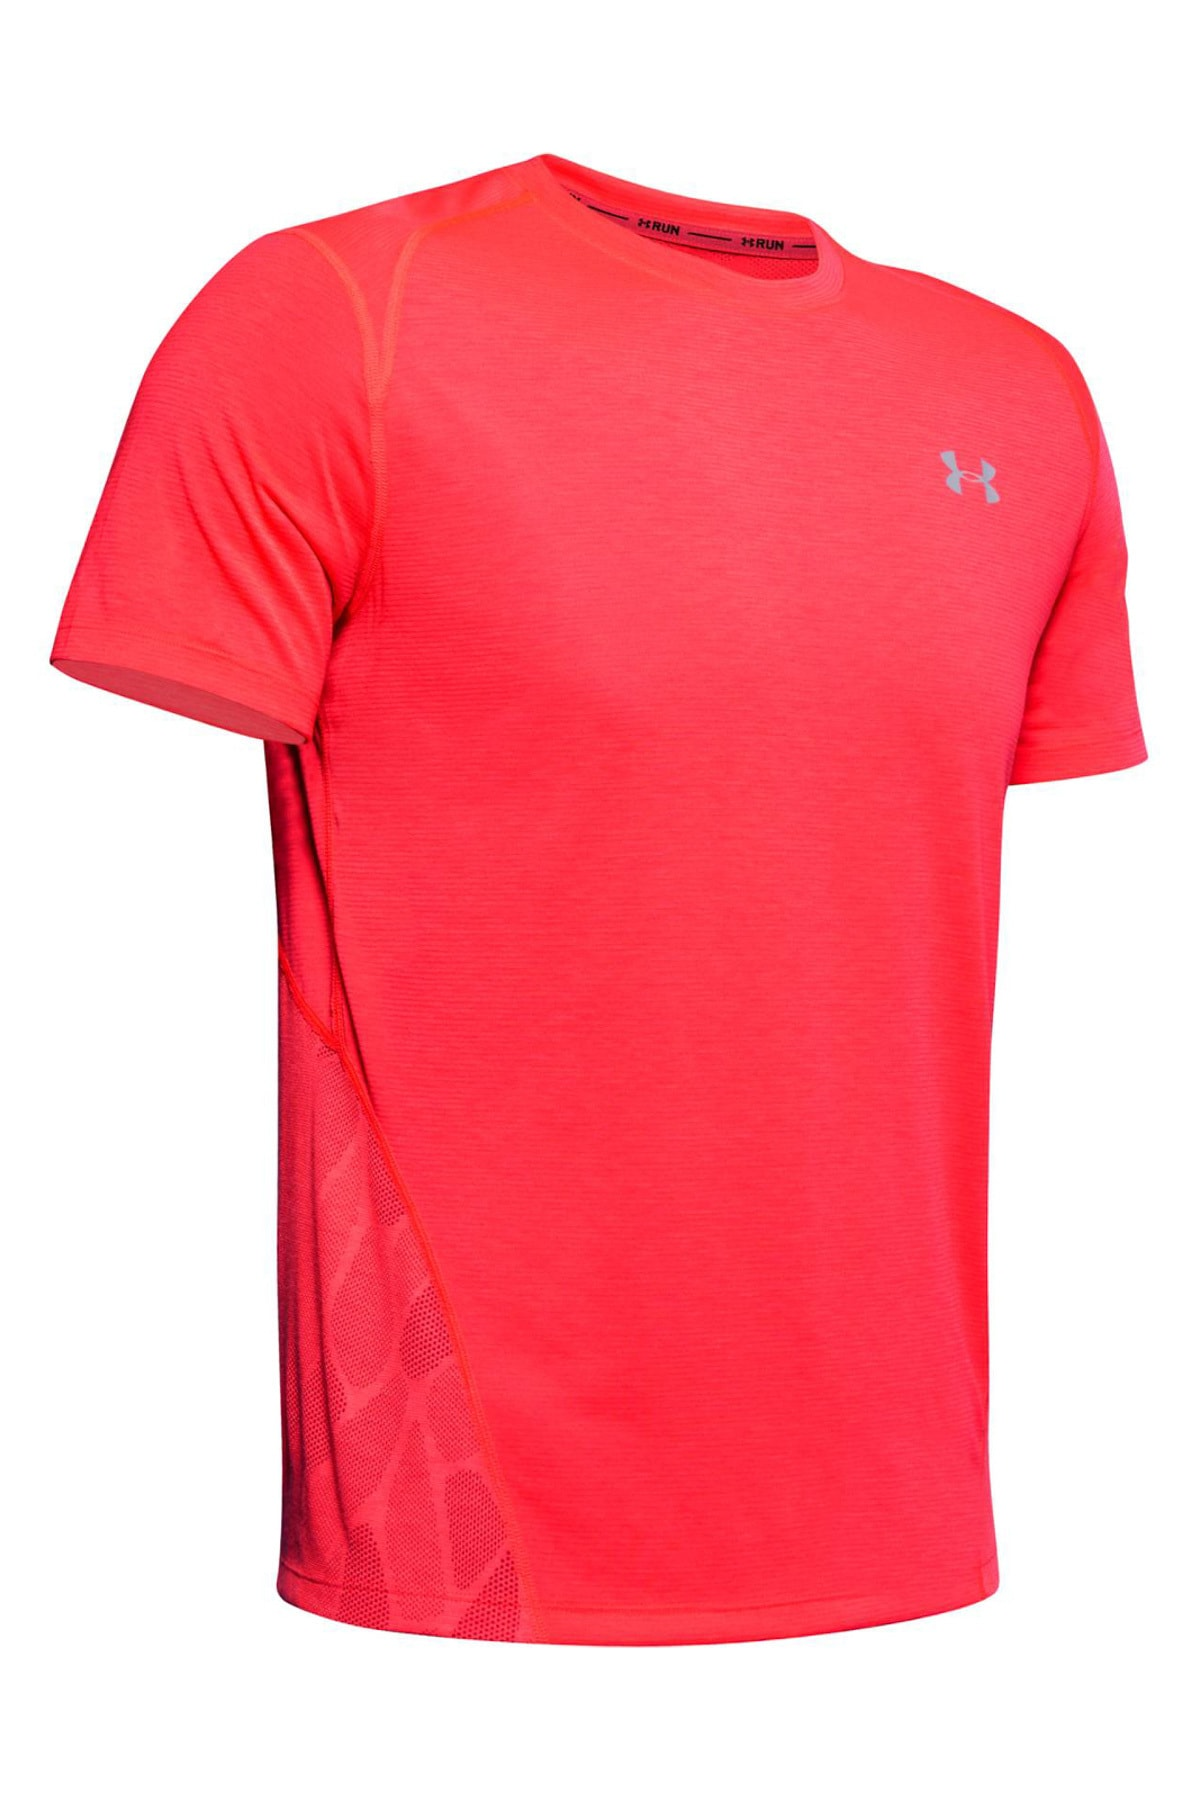 Under Armour Erkek Spor T-Shirt - M Ua Streaker 2.0 Shift Crew - 1350096-628 1